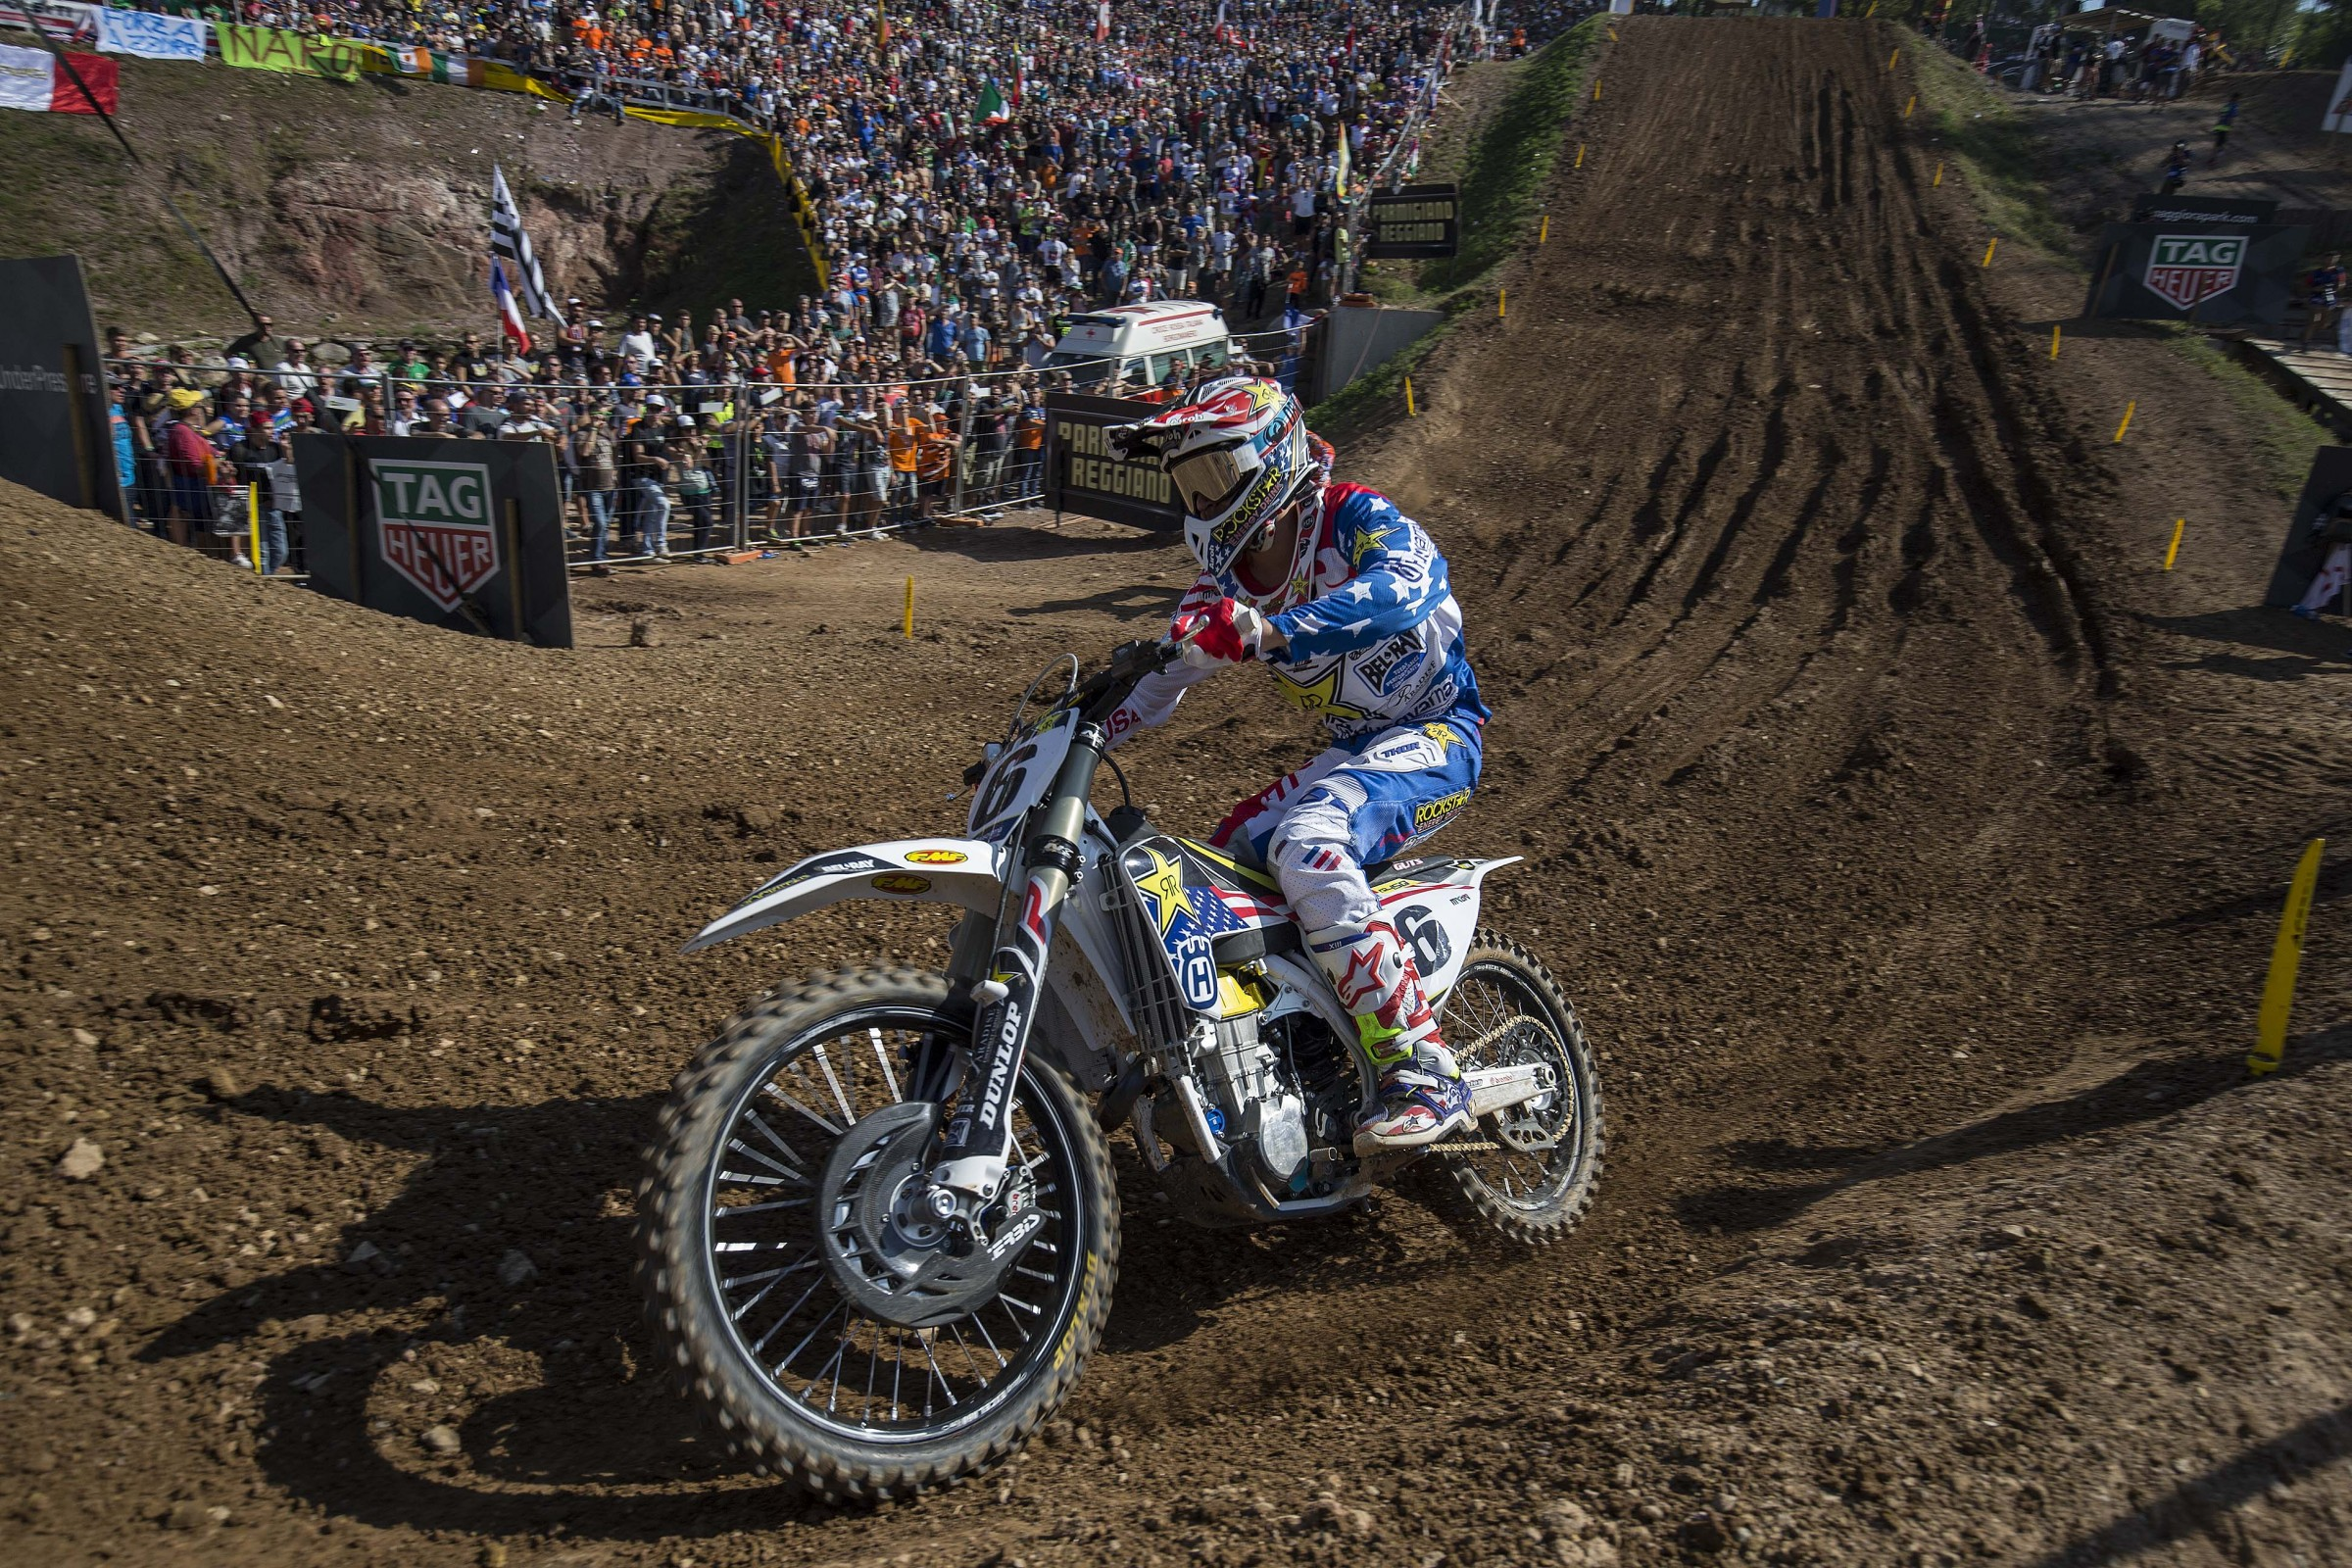 Anderson raced for Team USA at the 2016 Motocross of Nations, but a bizarre crash left him with a concussion and he was unable to compete in the final moto.